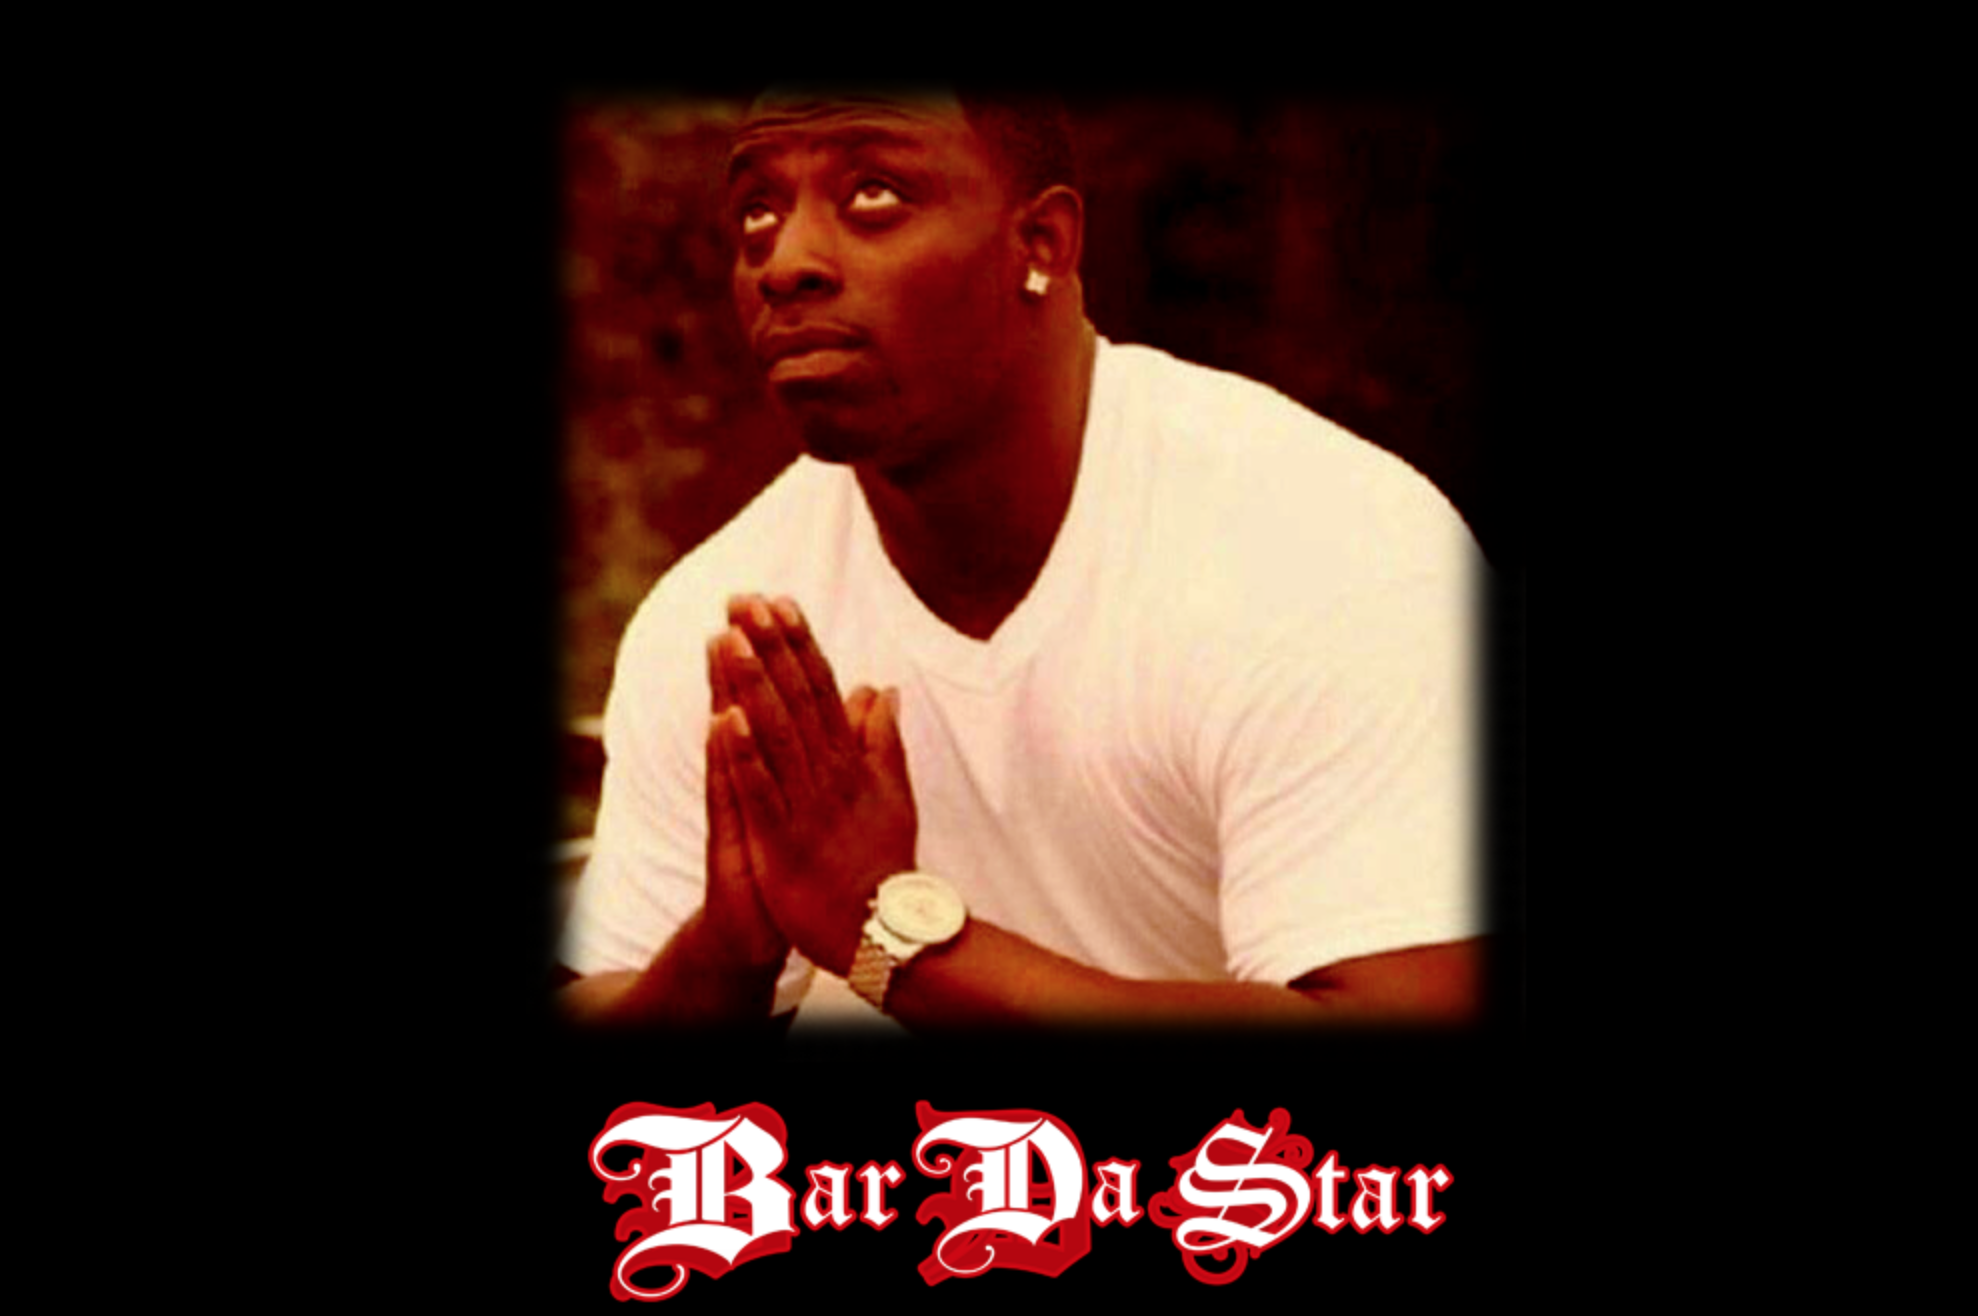 {Behind The Music} BarDaStar on Never Going Broke Again